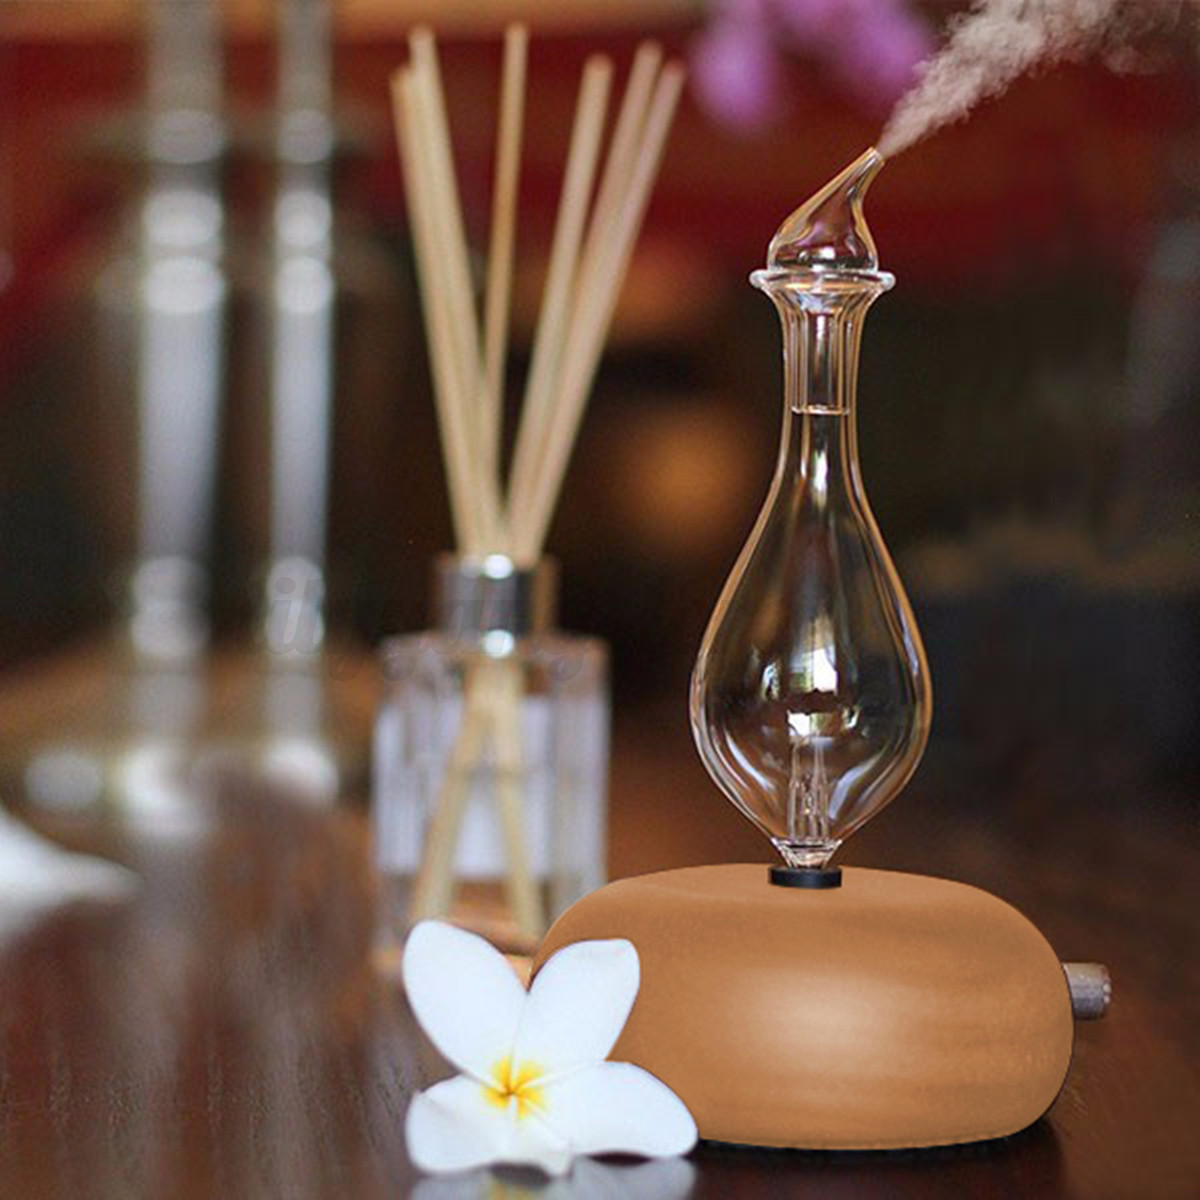 Wood Amp Glass Aromatherapy Essential Oils Diffuser Air Nebulizer Humidifier Ebay